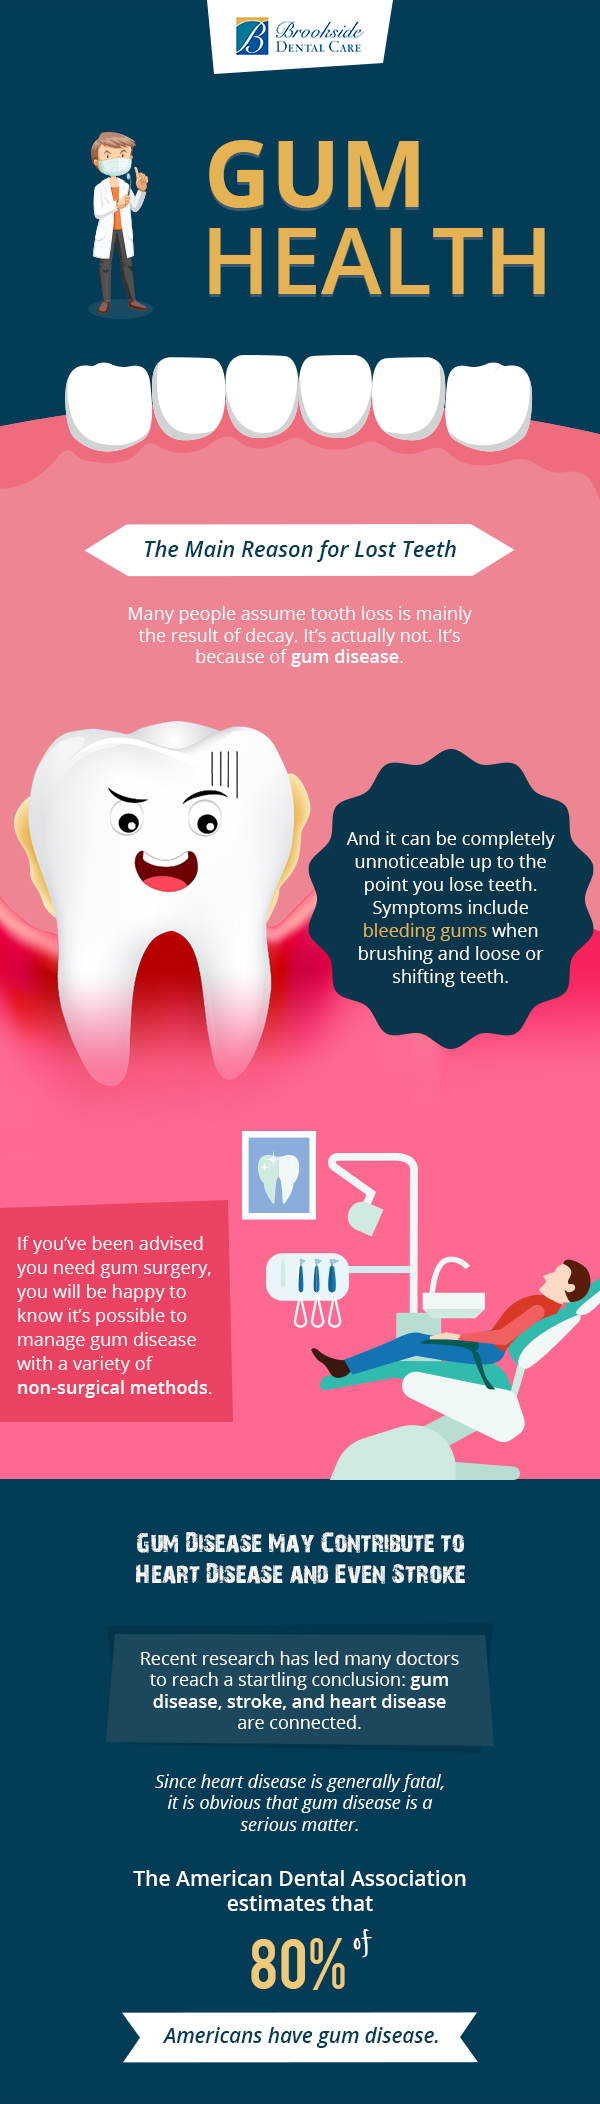 Get the Top Quality Gum Disease Treatment From Brookside Dental Care